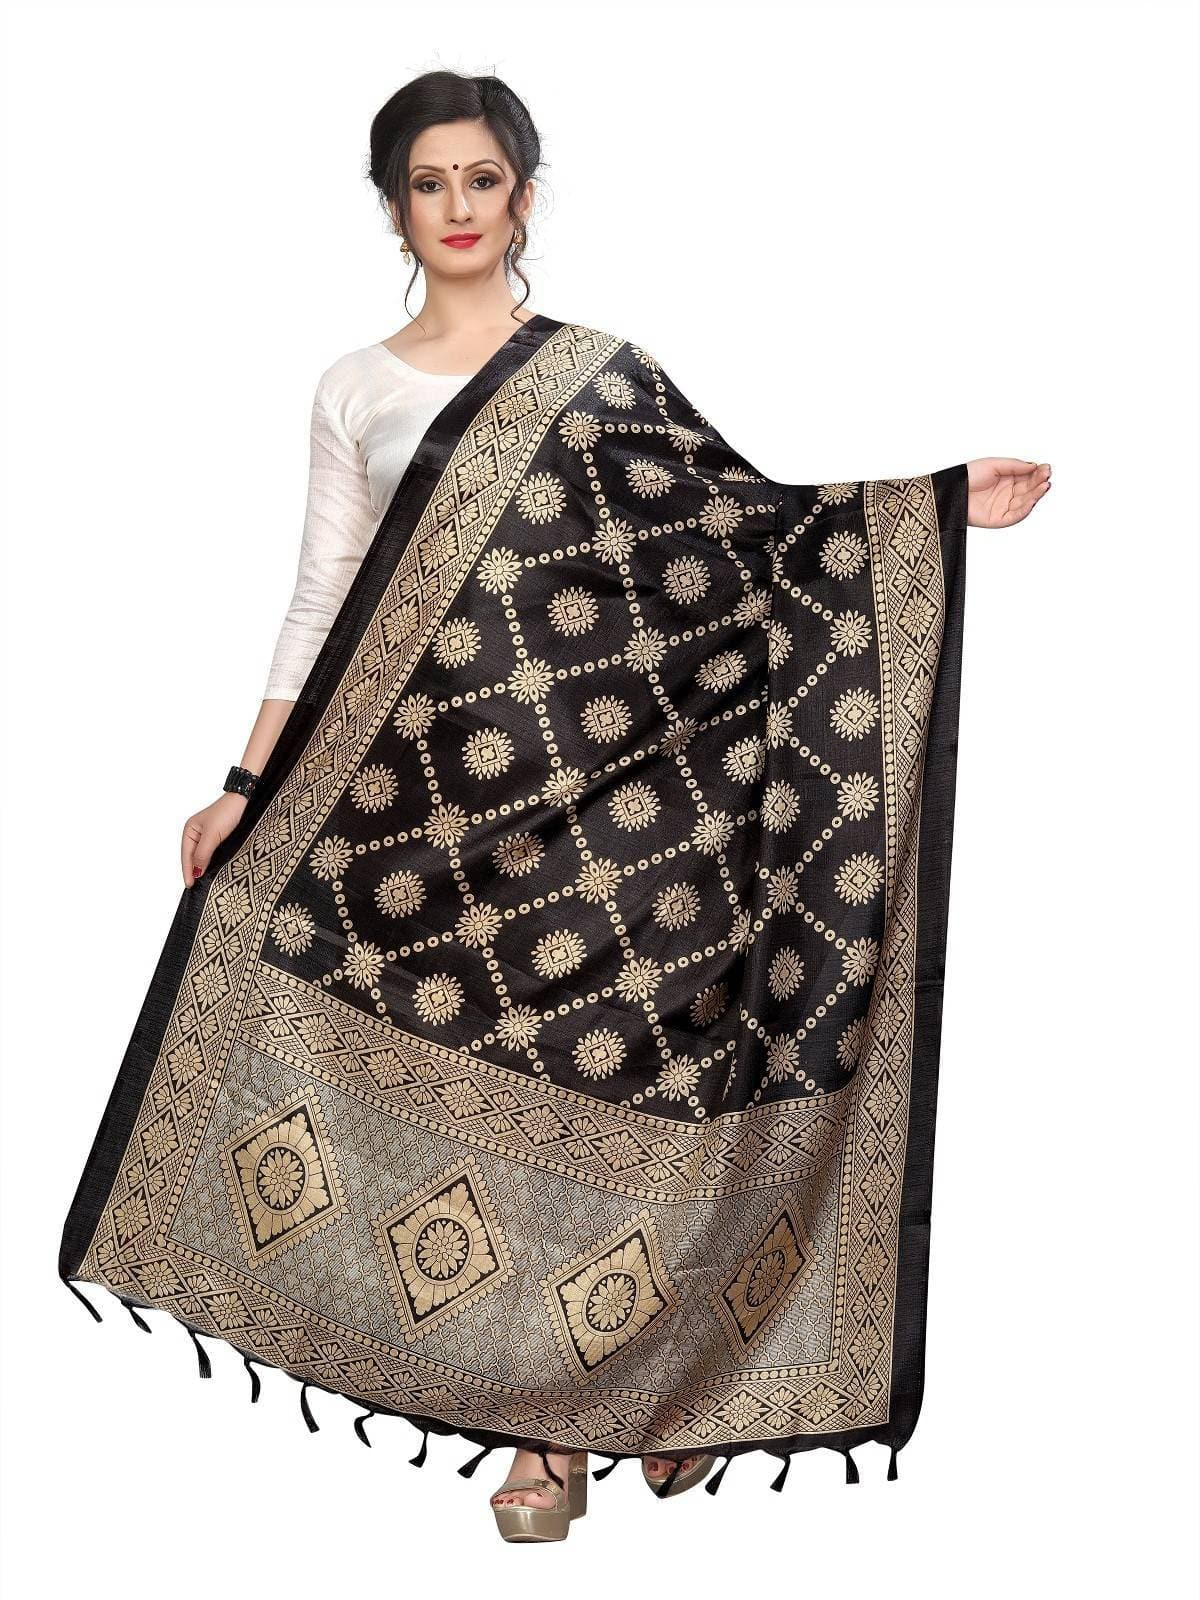 Vamika Latest Fashion Black Printed Khadi Bhagalpuri Dupatta